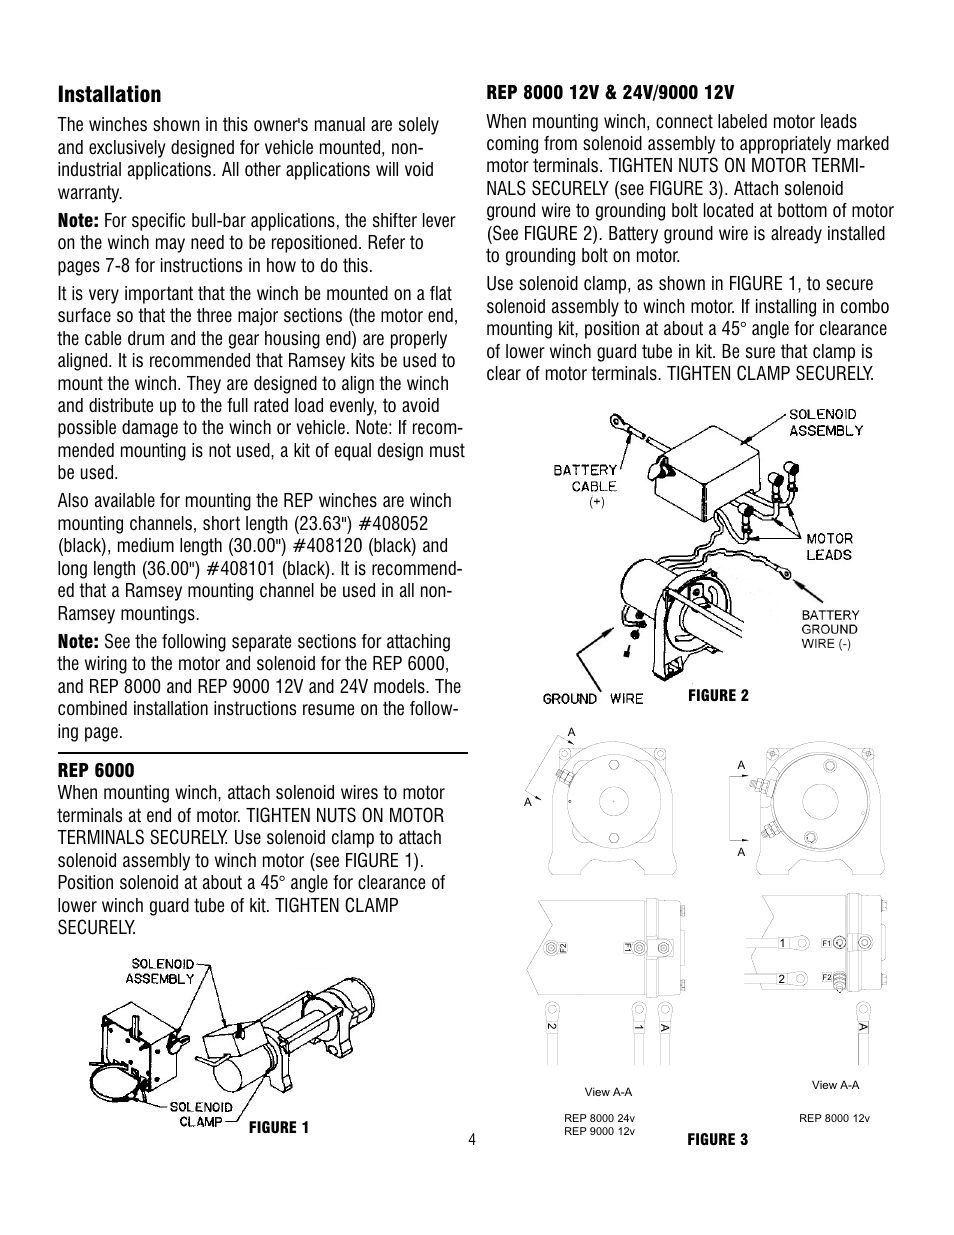 ramsey winch rep 6000_8000_9000 current page4 installation ramsey winch rep 6000 8000 9000 current user manual wiring diagram for a 8000 ramsey winch at honlapkeszites.co